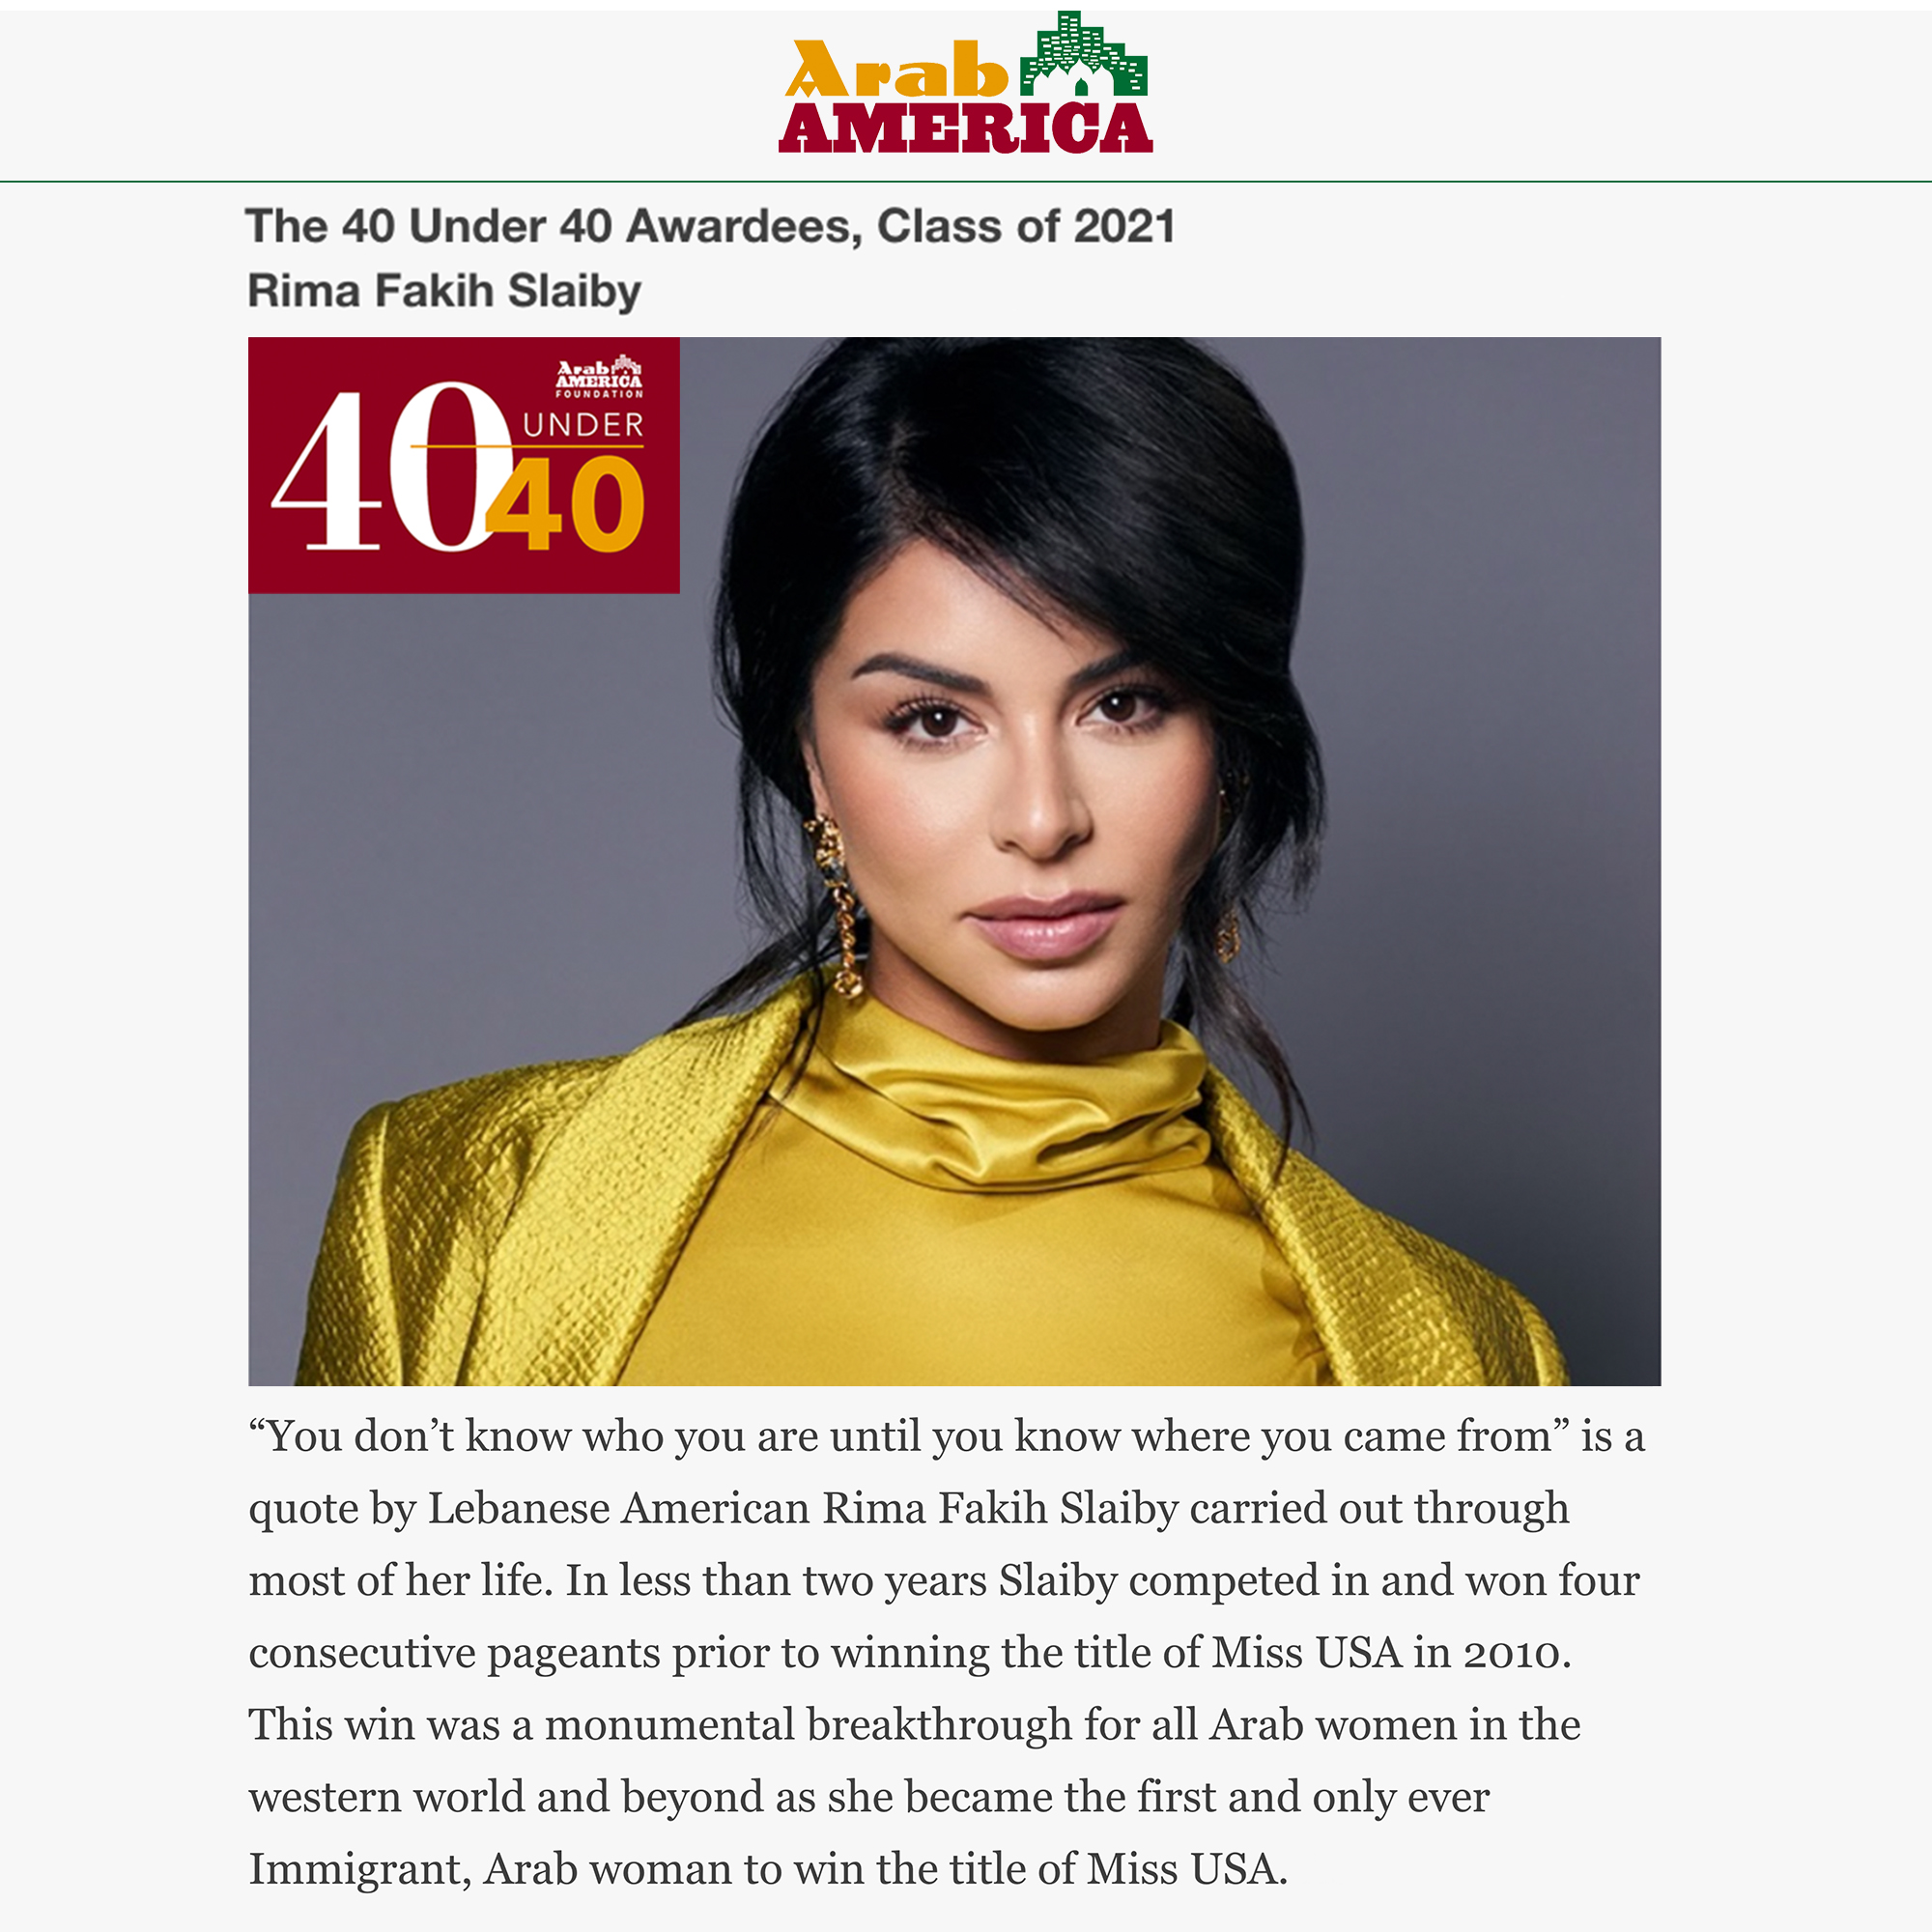 Named As One Of The Arab America Foundation's 40 Under 40 Awardees (Class of 2021)